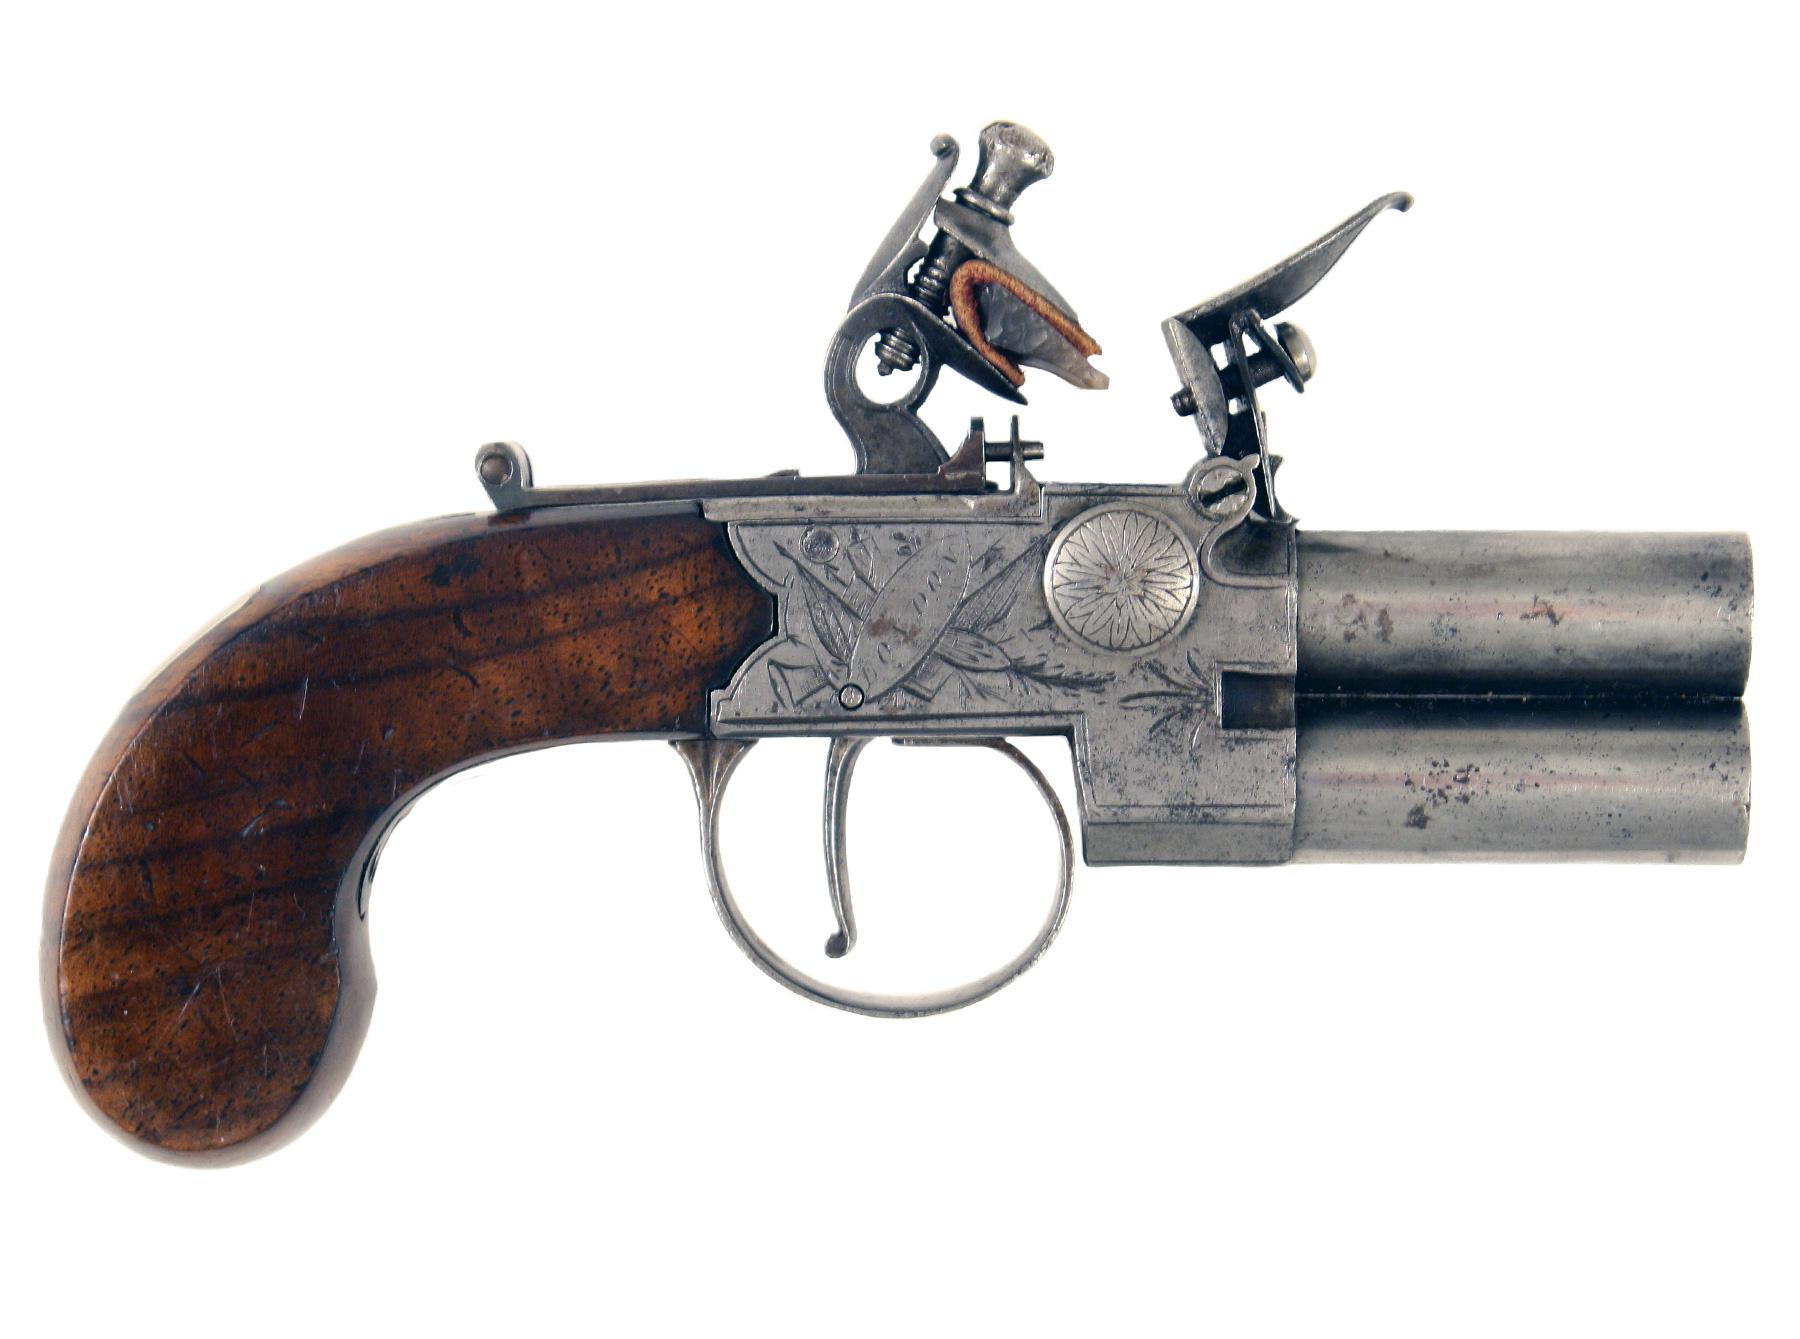 A Tap Action Pistol by Southall